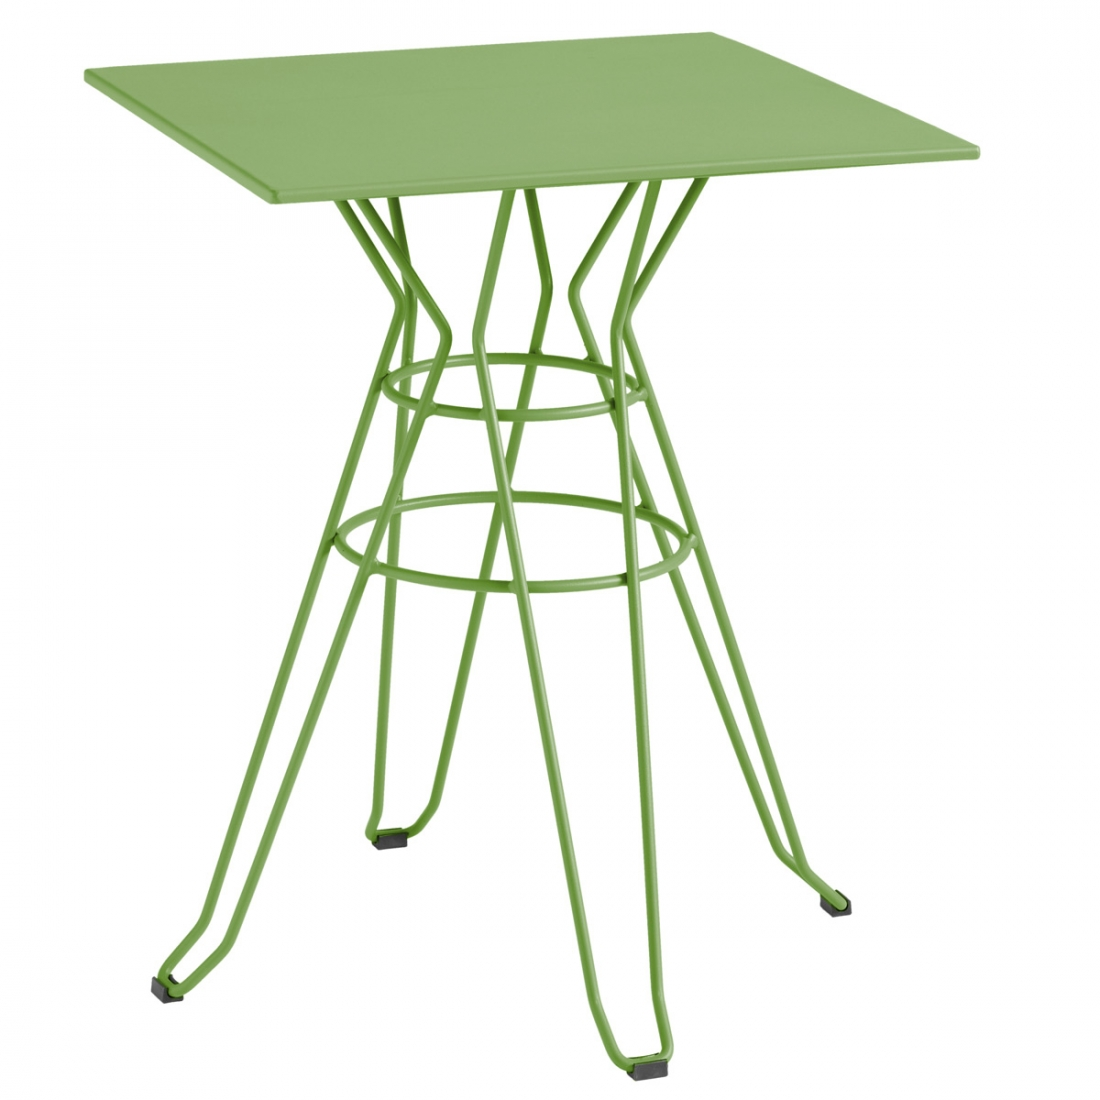 Table basse de jardin carr e capri isimar - Table basse de jardin ...